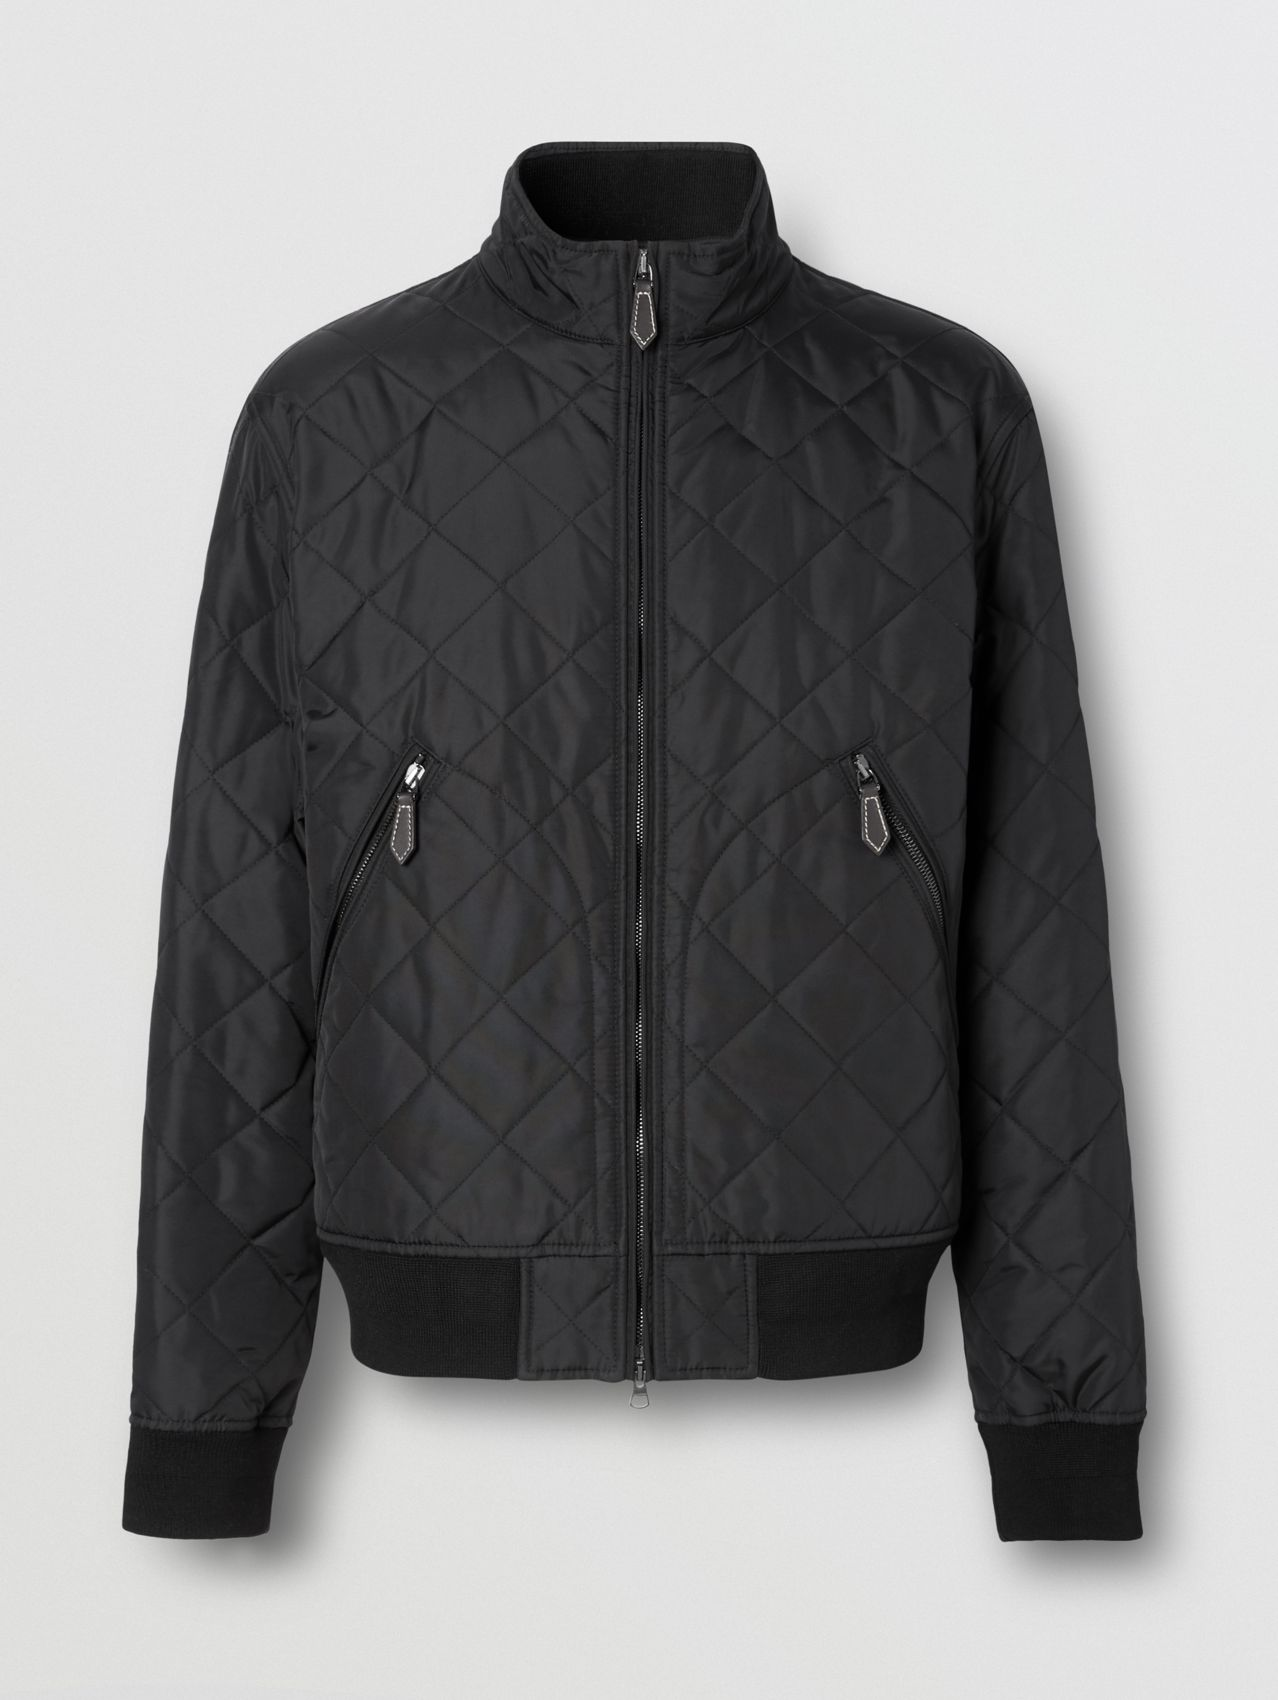 Diamond Quilted Thermoregulated Jacket in Black